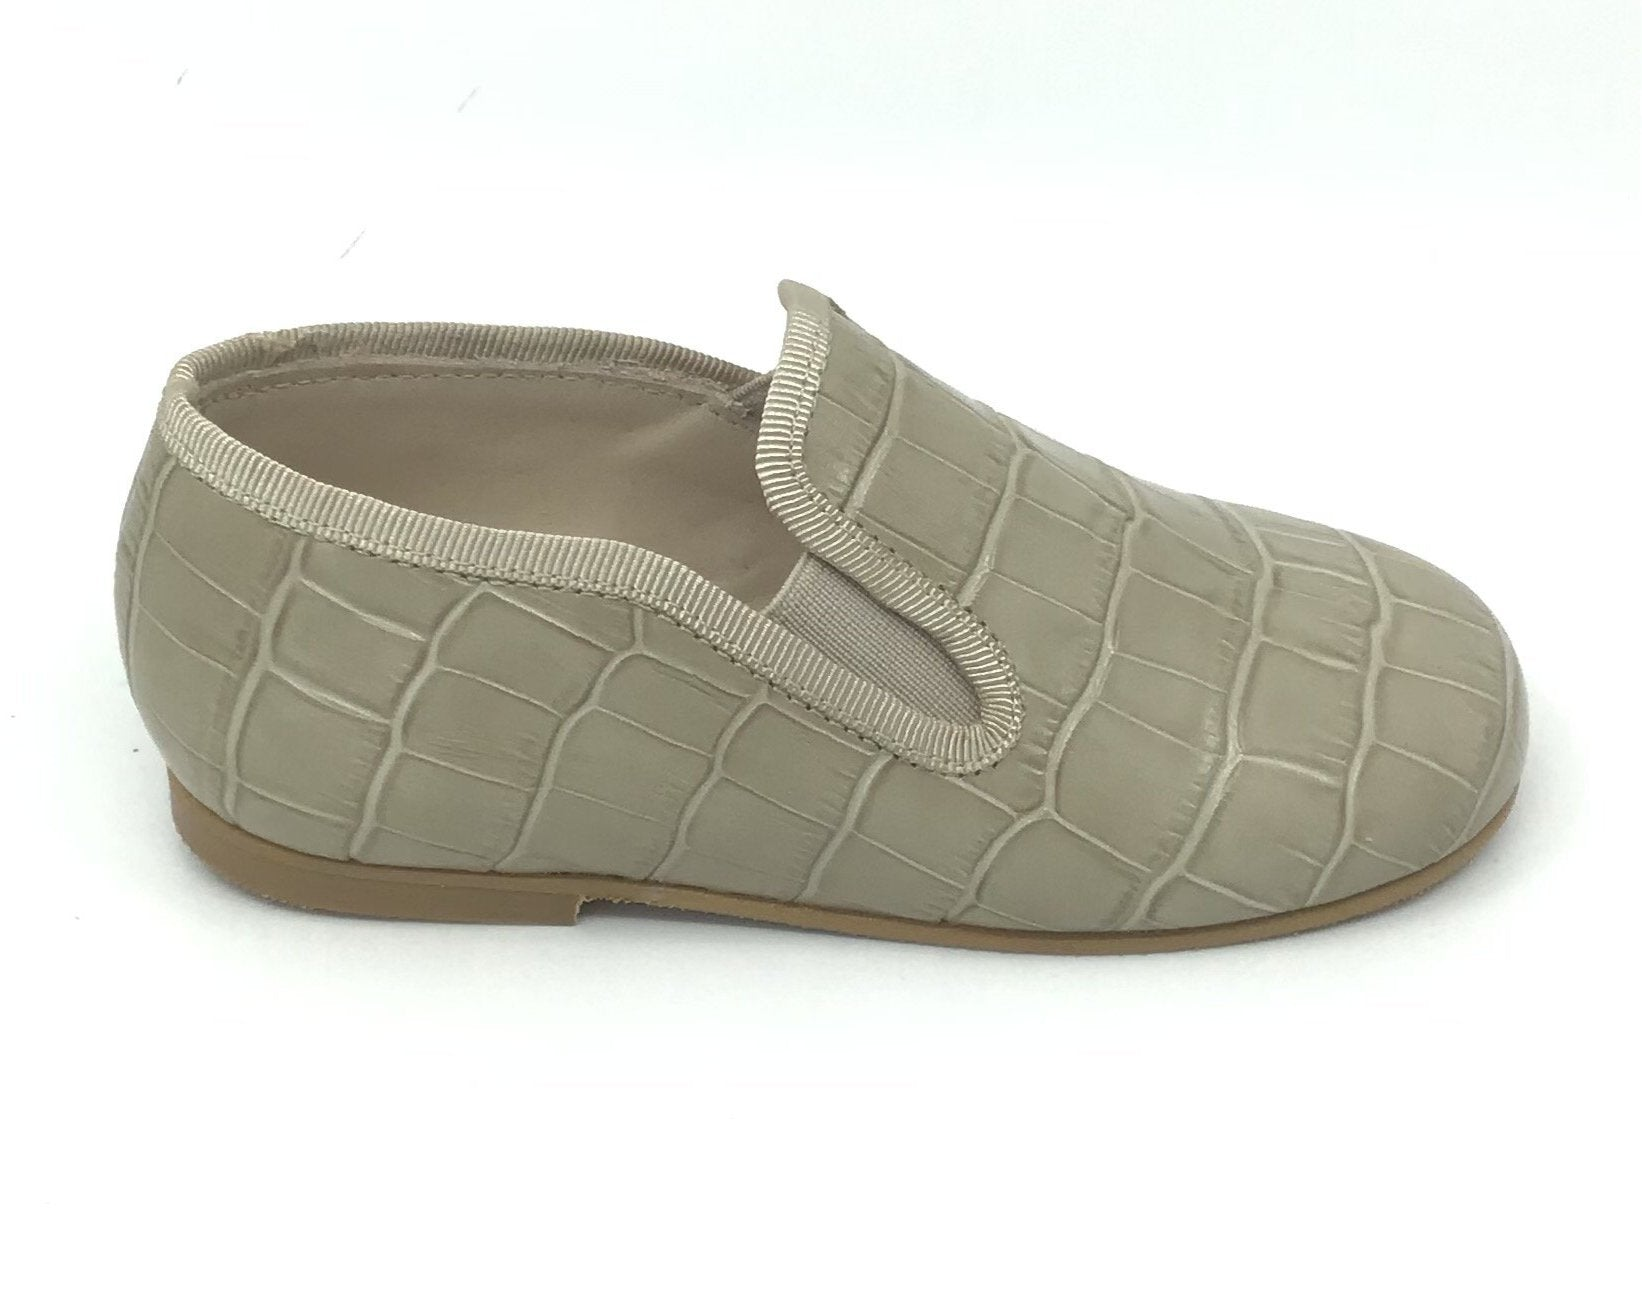 Luccini Taupe Crocodile Skin Loafer